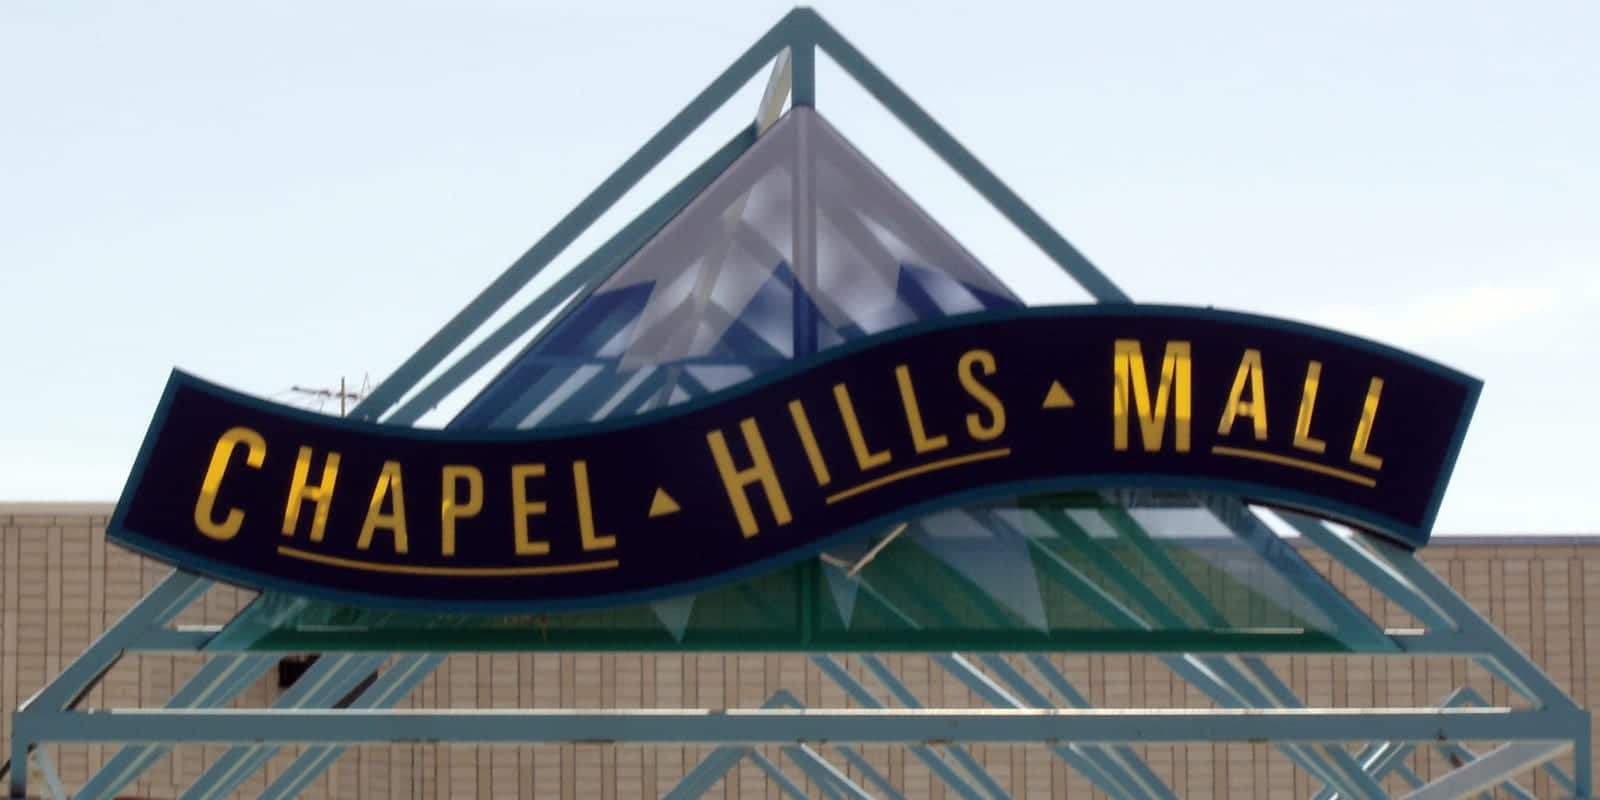 Chapel Hills Mall - Colorado Springs, CO